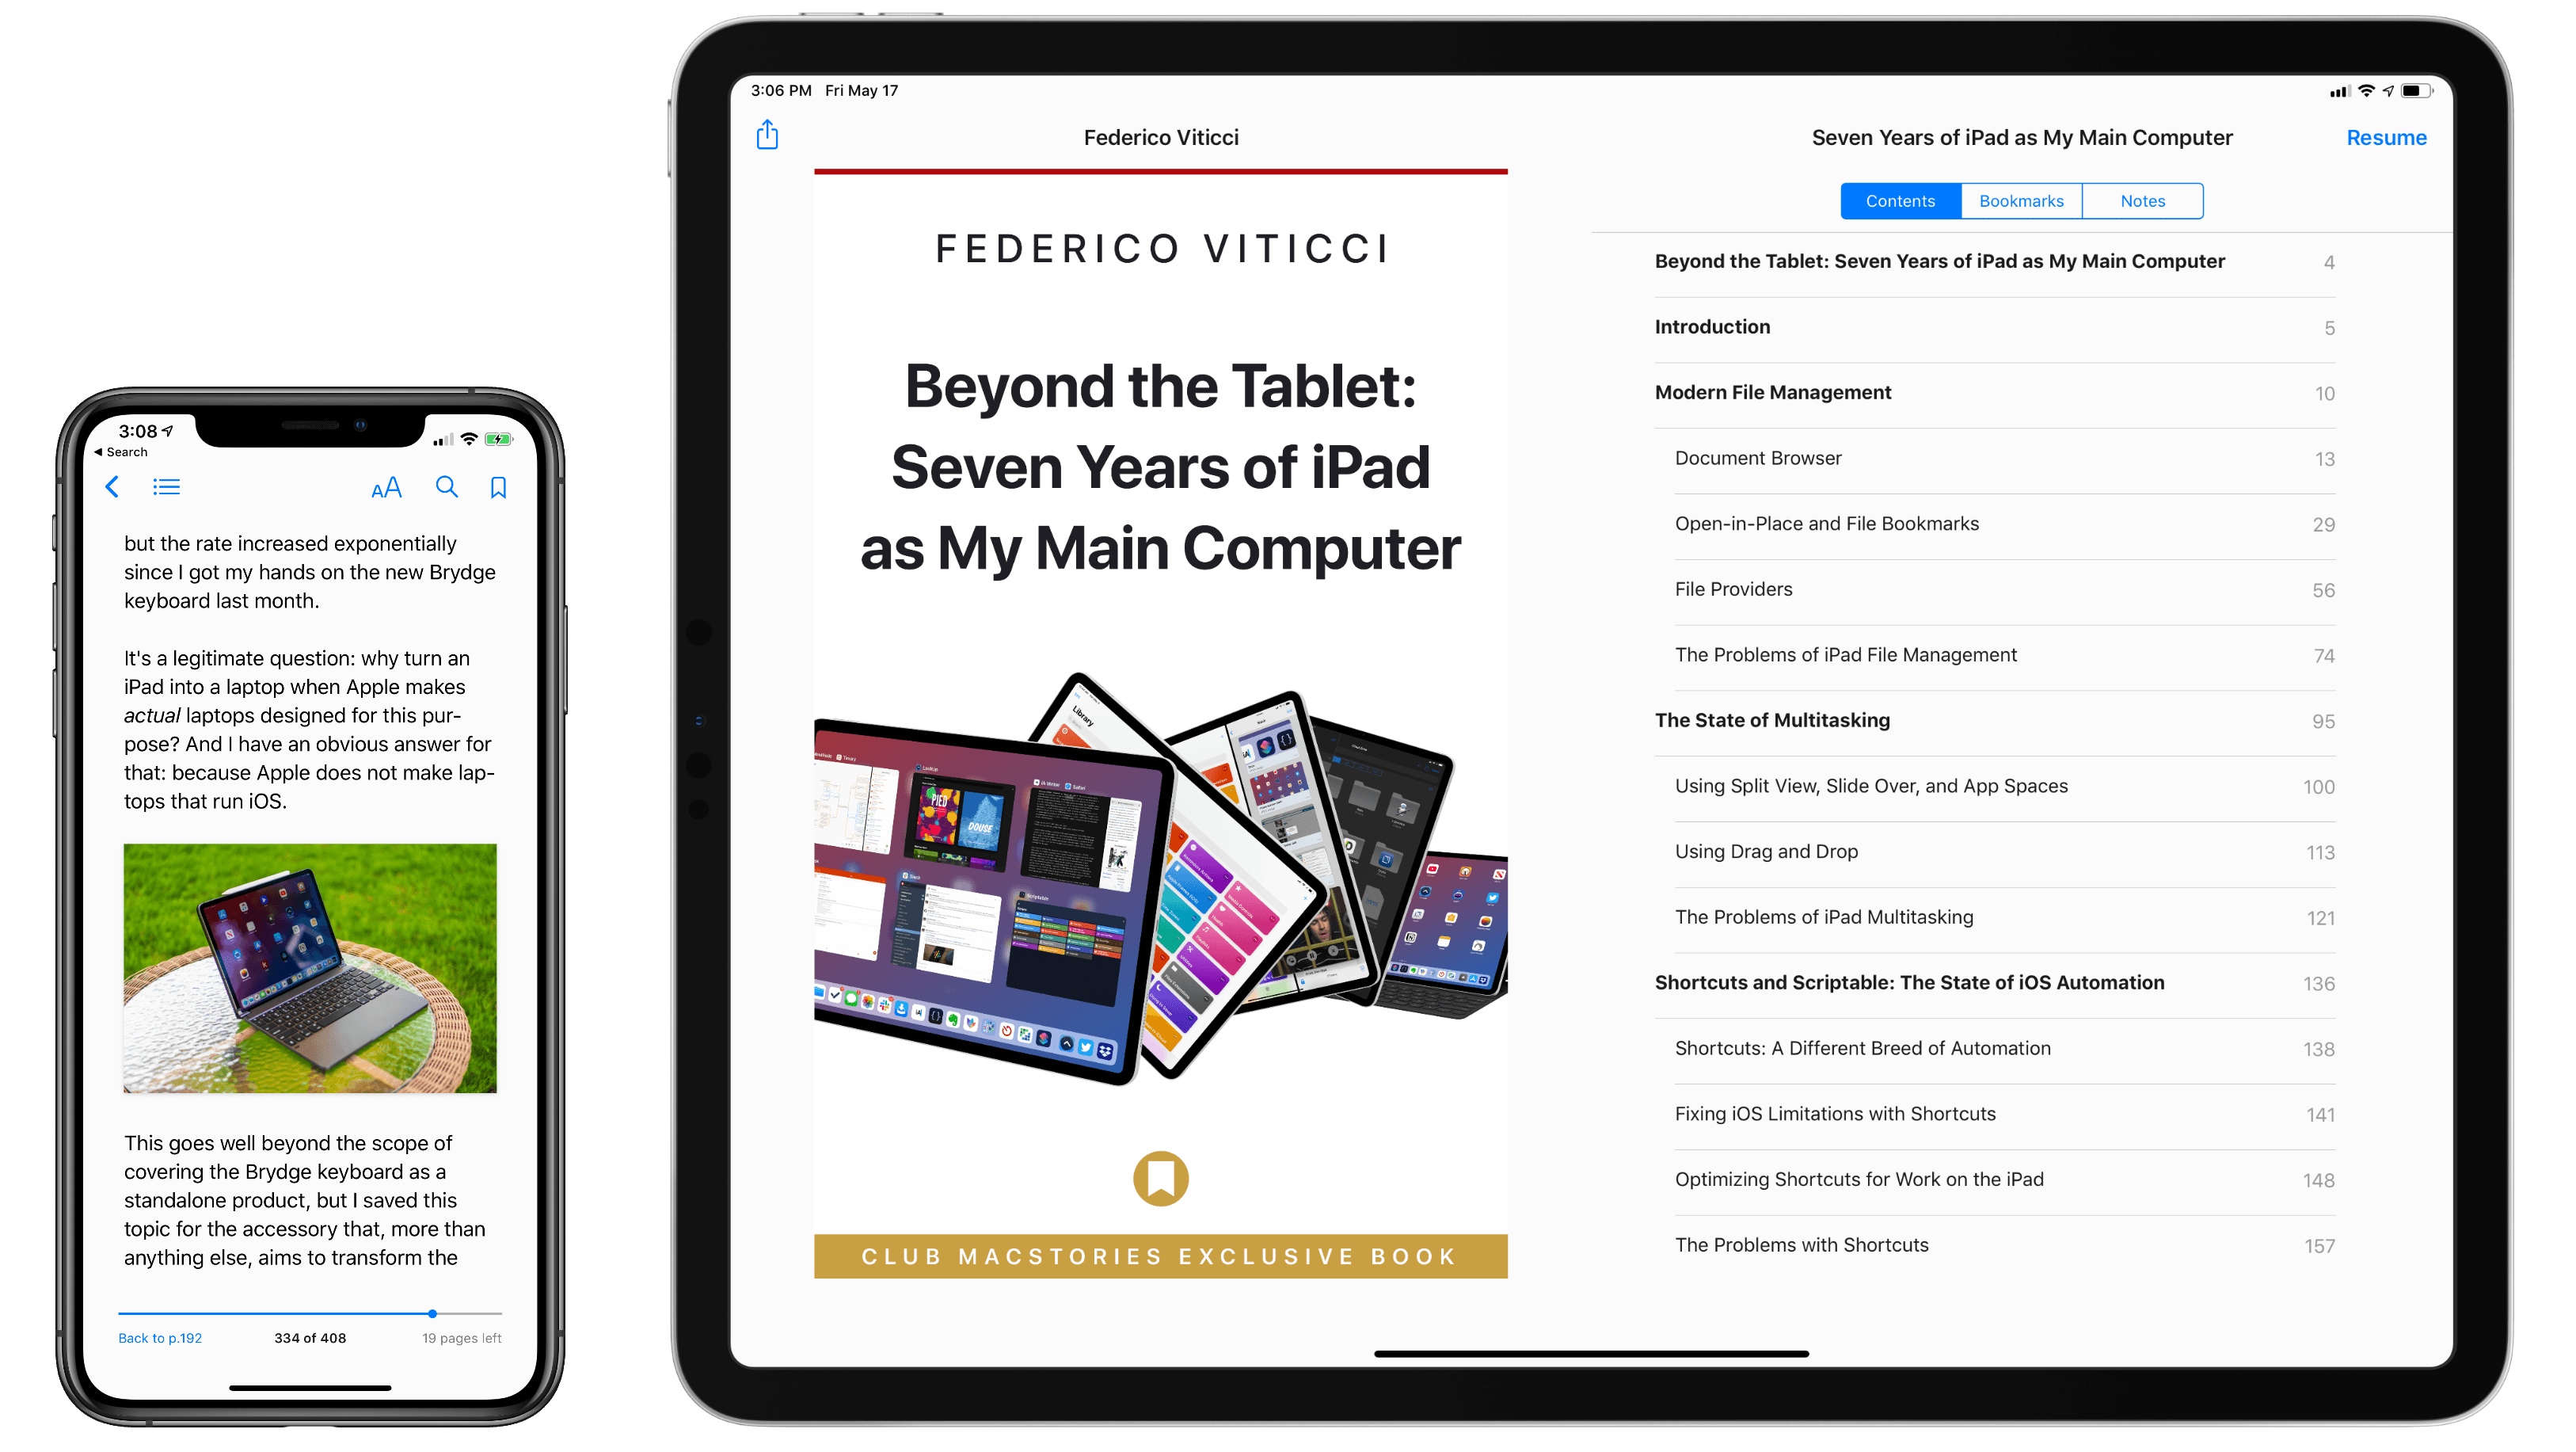 Beyond the Tablet: Seven Years of iPad as My Main Computer